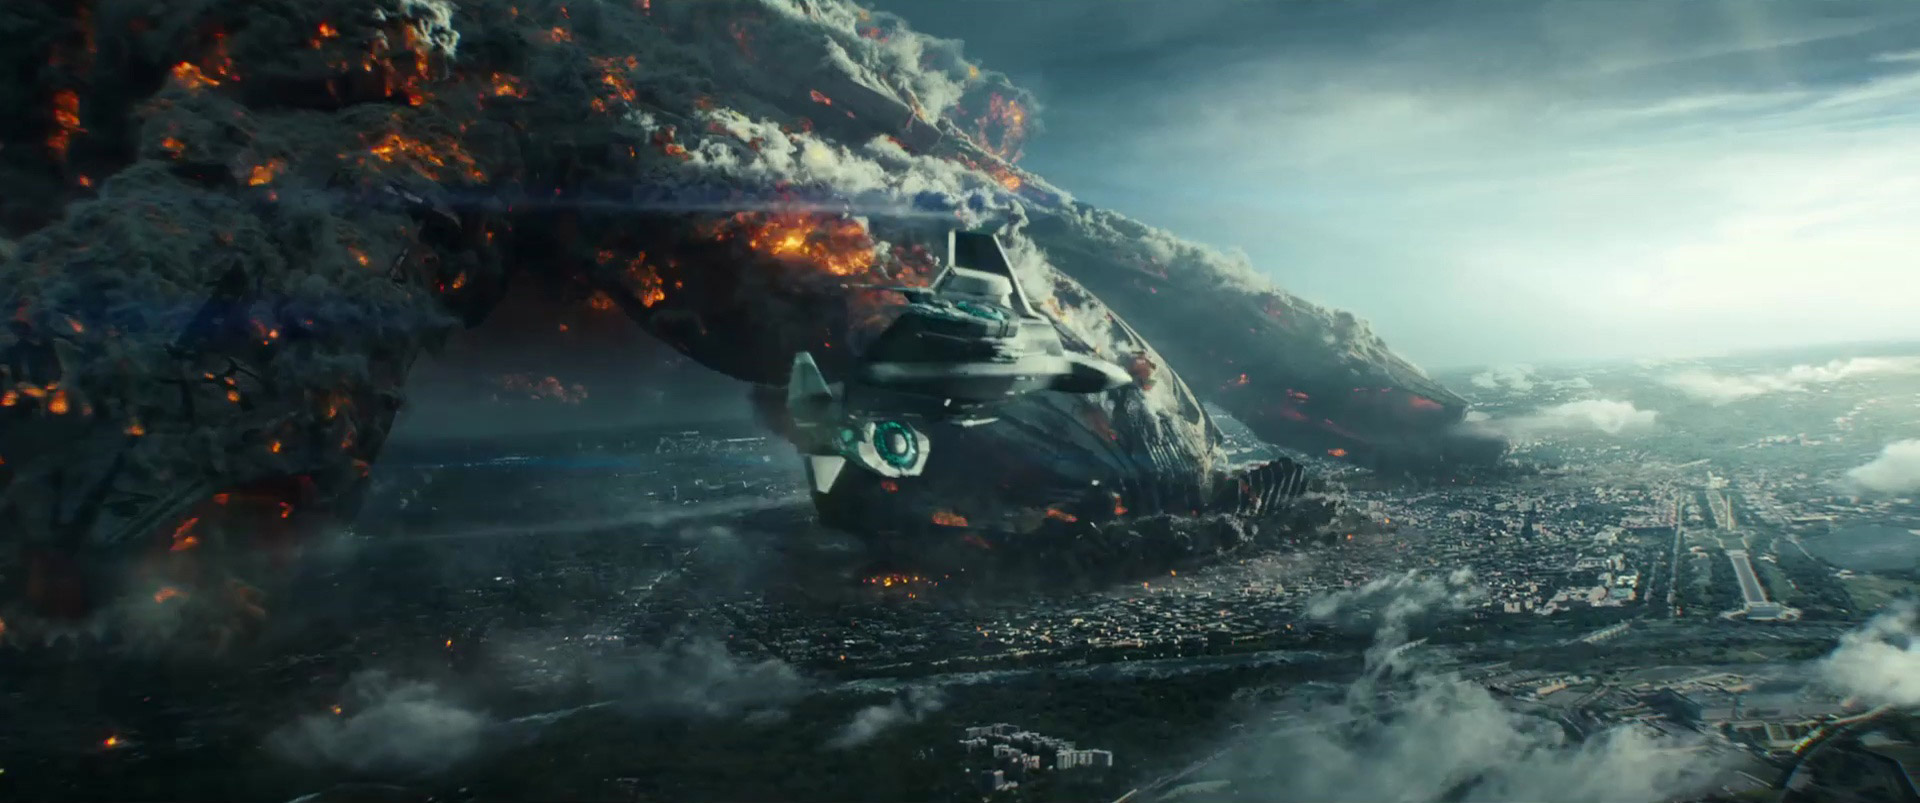 independence-day-insurgence-trailer-new